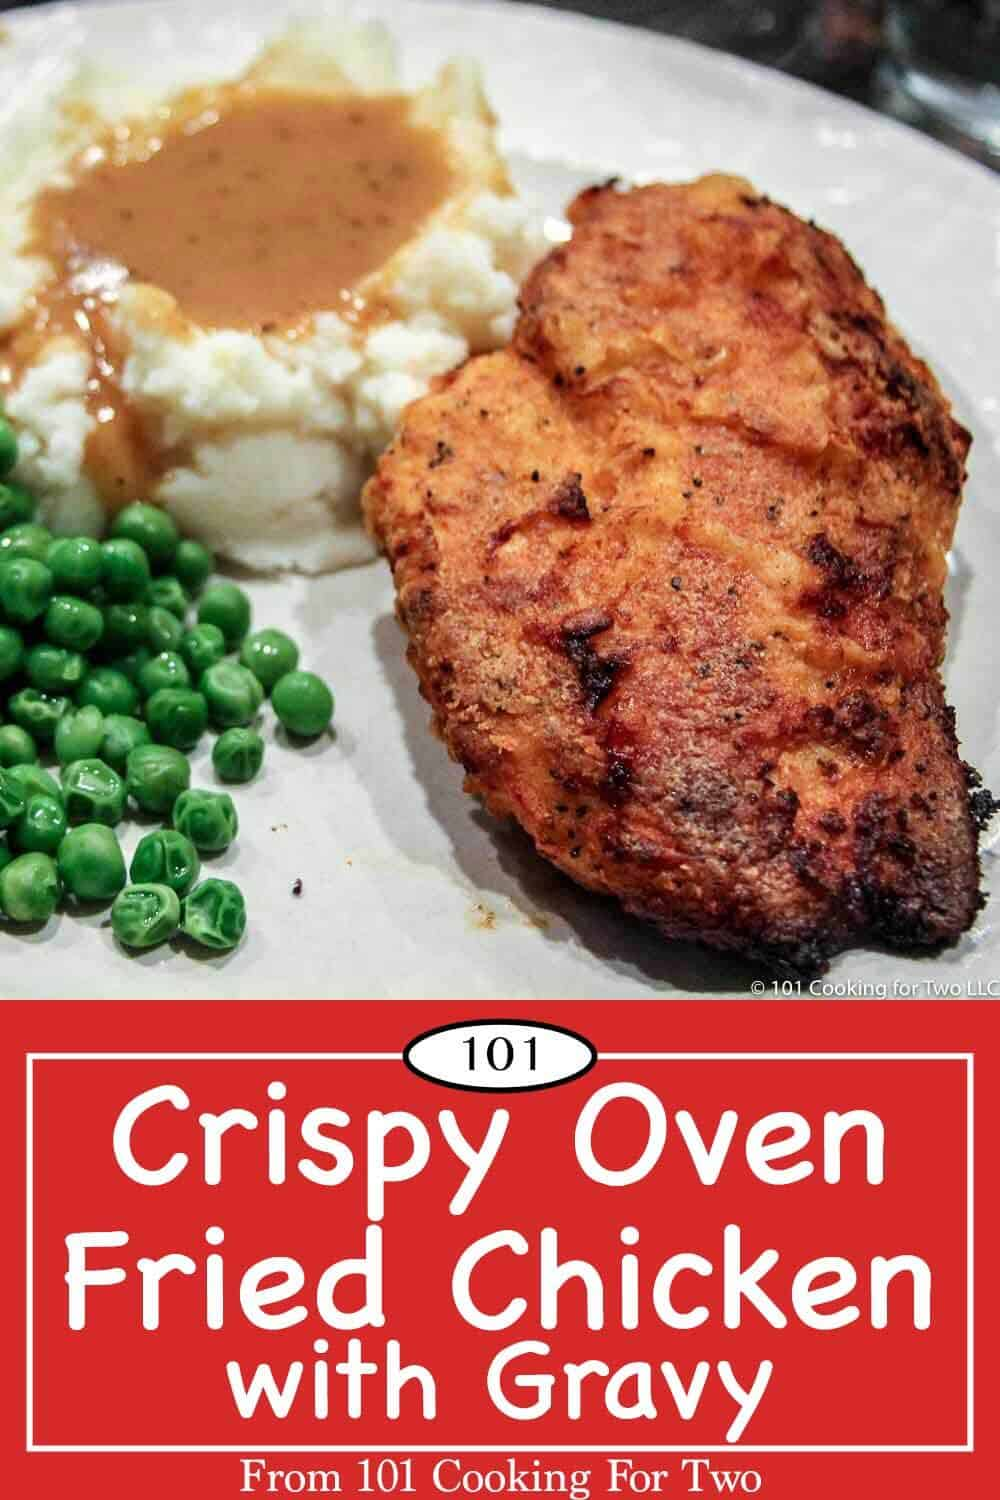 Healthier and easier, this is the best oven fried chicken breasts you will ever eat. Just follow these easy step by step photo instructions.  #BestFriedChicken #OvenFriedChicken #CrispyFriedChicken #FriedChicken